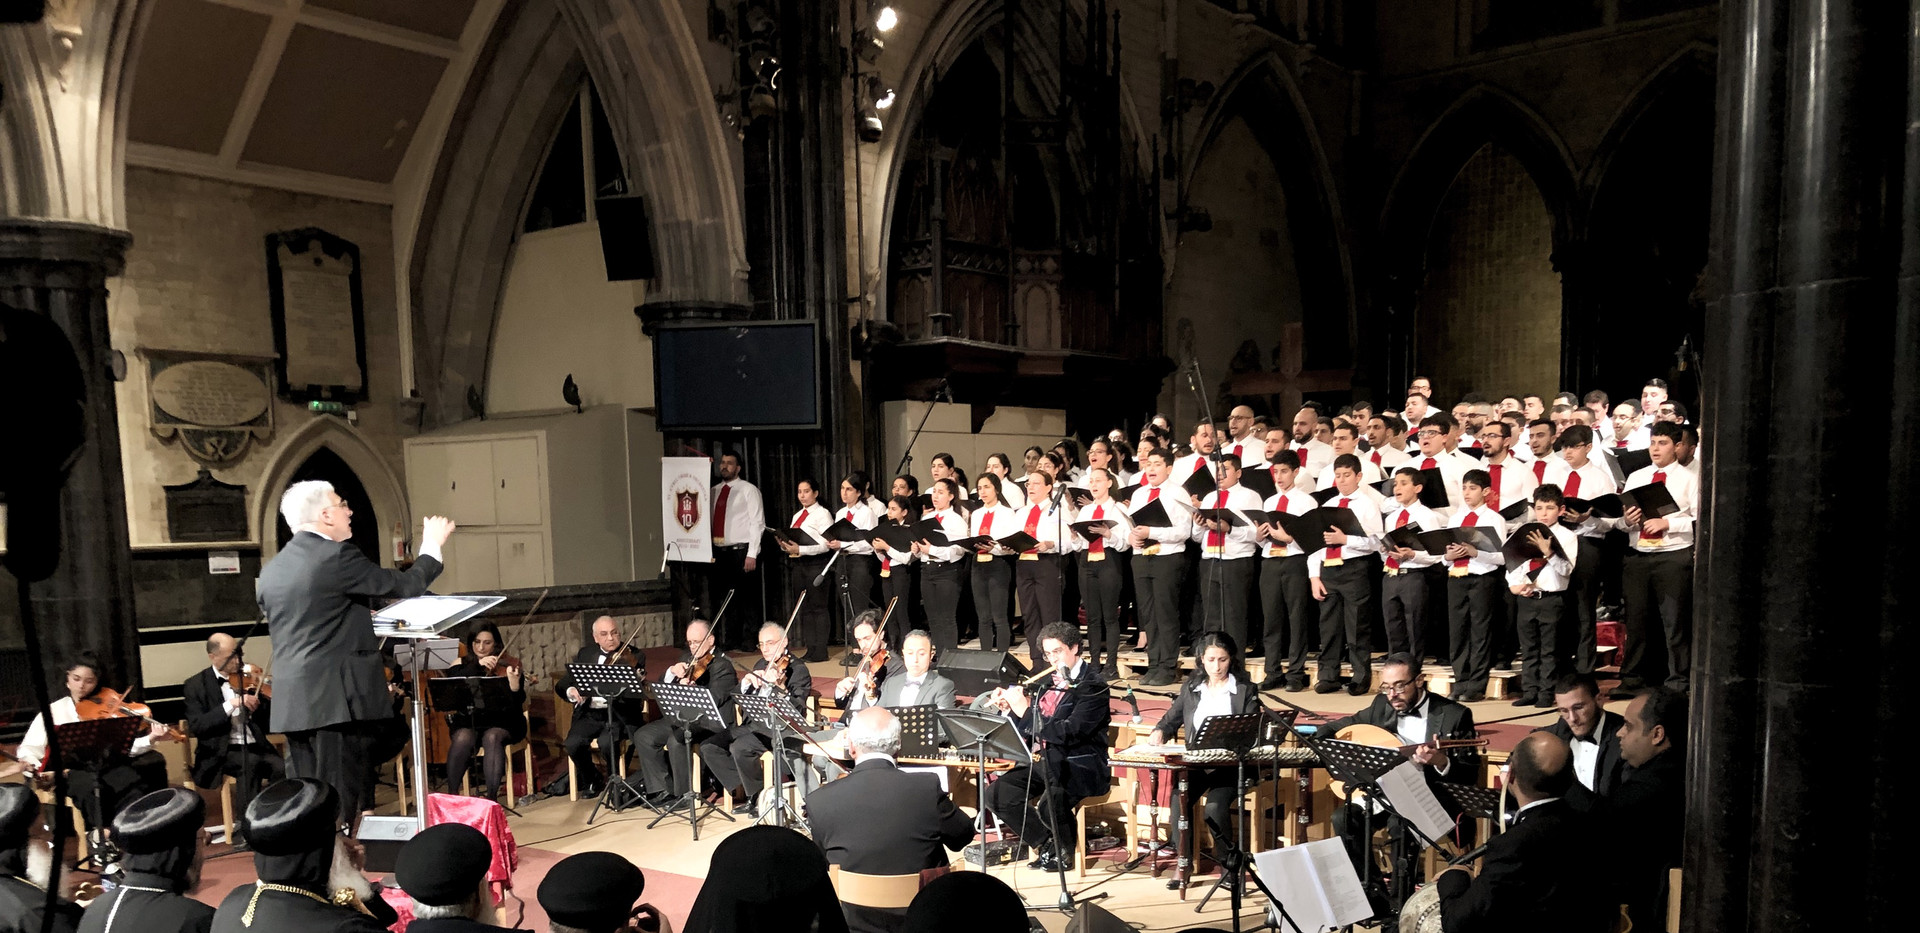 Church Choir & Orchestra Performance